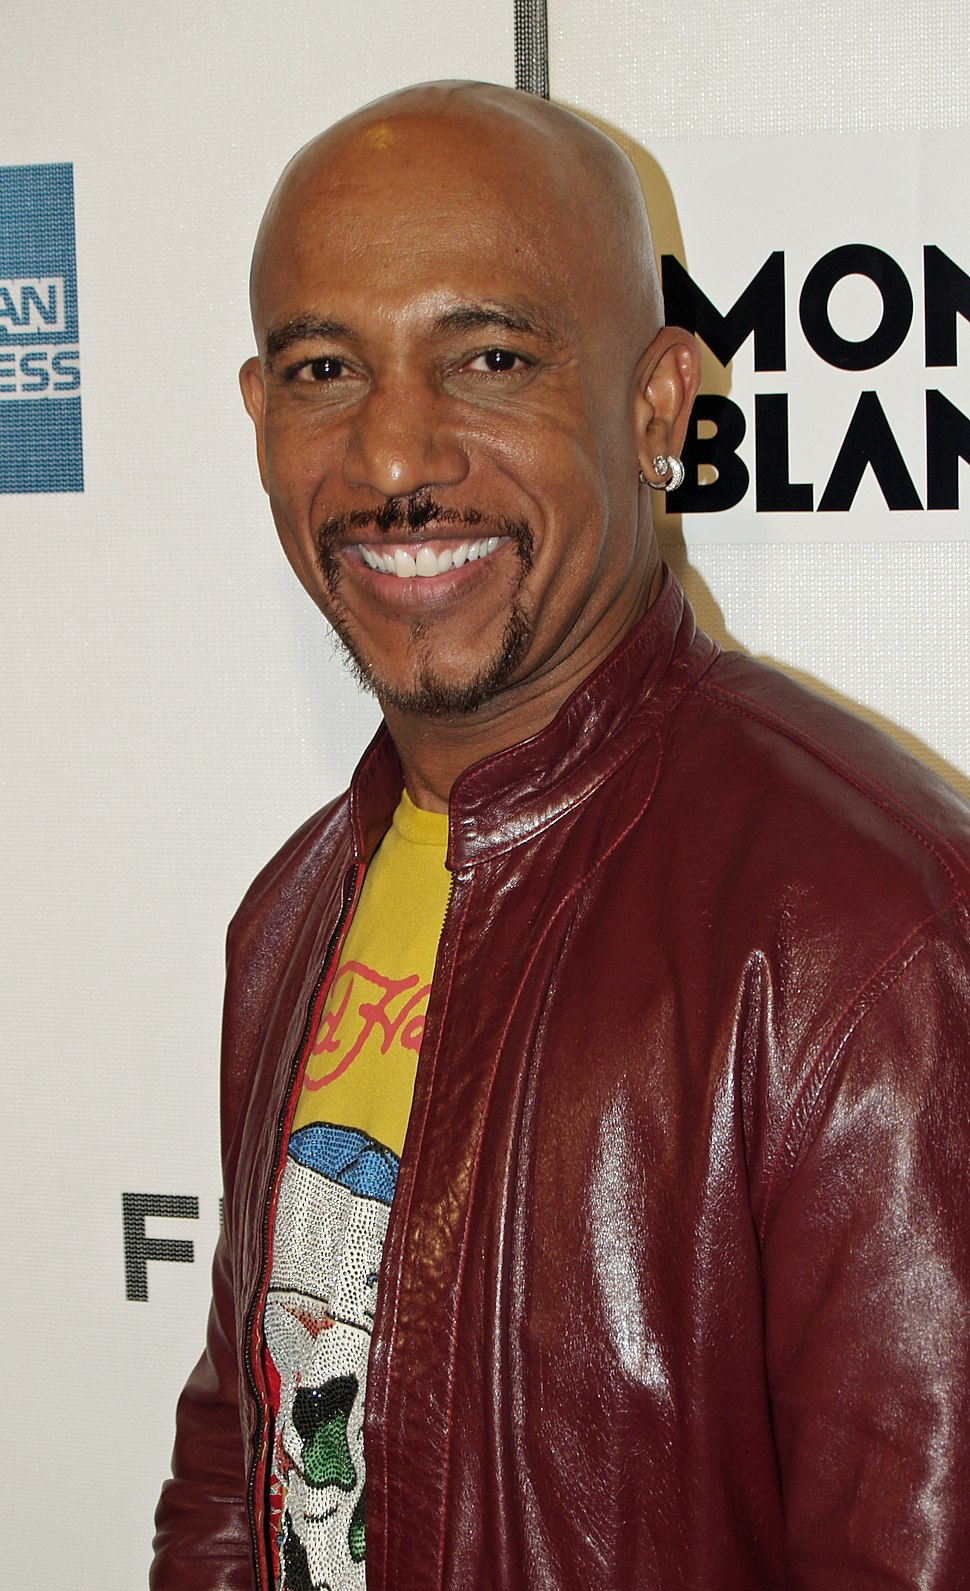 Montel Williams by David Shankbone